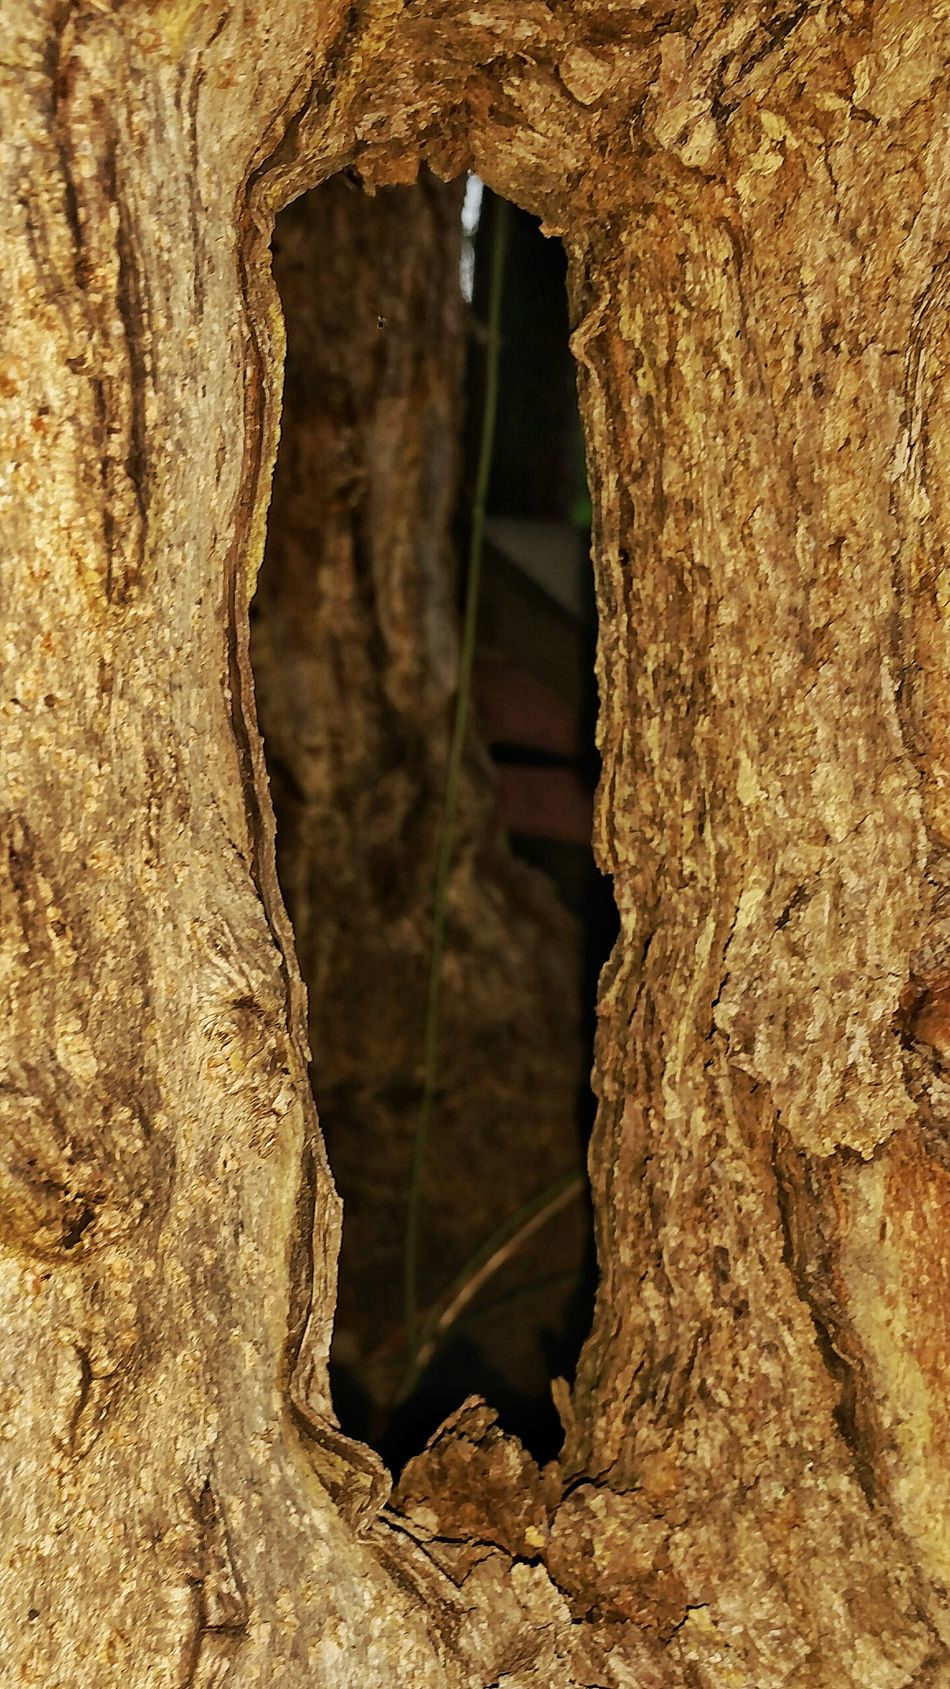 Cave Nature Close-up Travel Destinations No People Beauty In Nature Stalactite  Day Outdoors Cultures Tree Frame Shapes And Forms View Through Trees Frame Natural Frame Hole Hole In Tree Shapes In Nature  Diversity In Nature Natures Diversities TreePorn Unusal Wood Tree_collection  Tree Hole